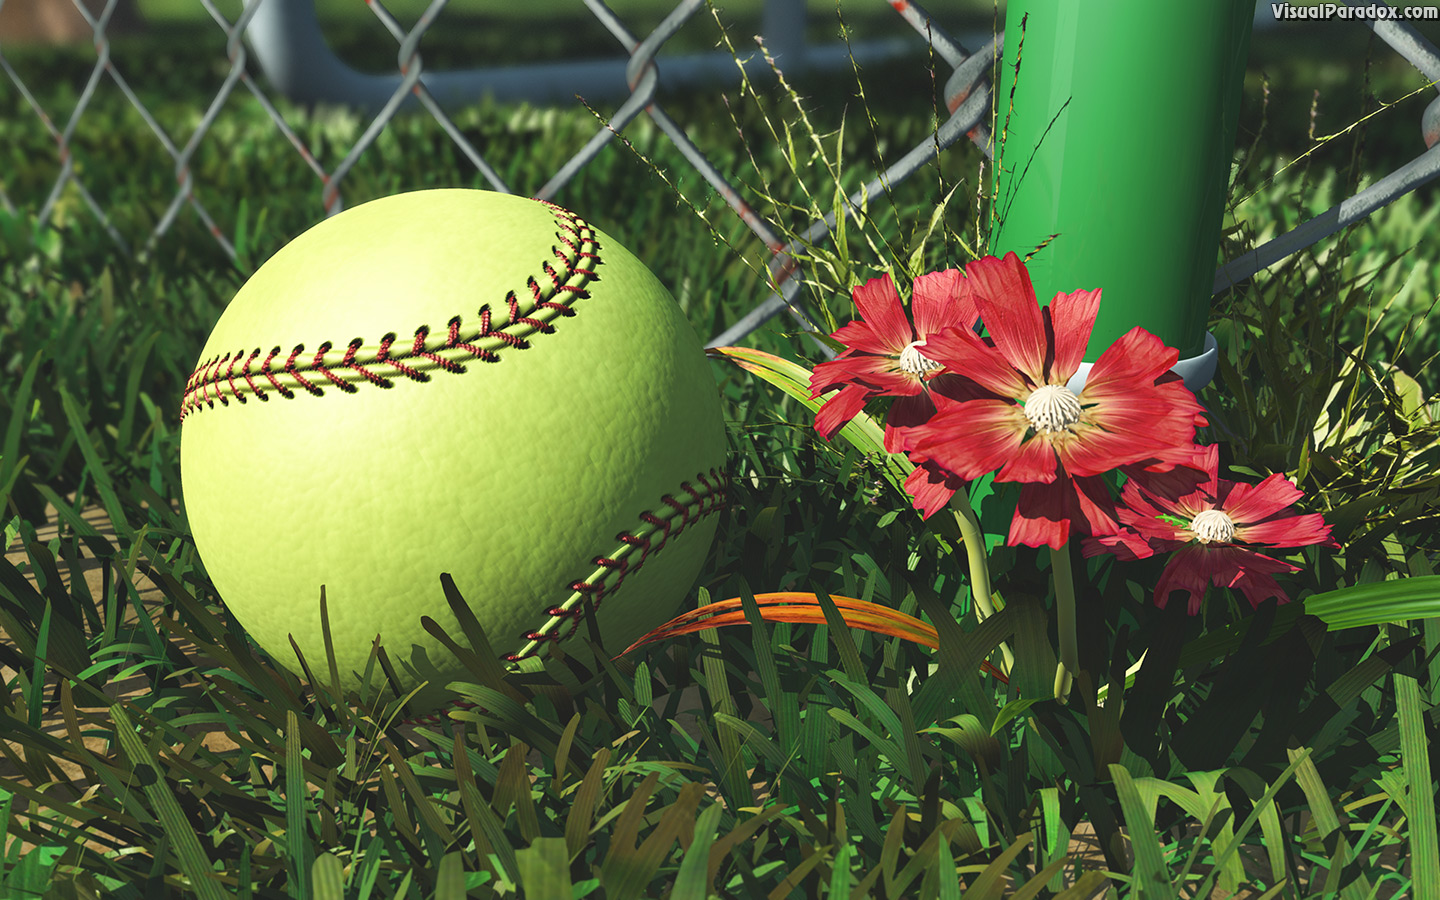 america, american, athletic, athletics, ball, ballpark, barrier, baseball, boundary, chain, closeup, color, detail, equipment, fence, field, flower, foul, game, gear, grass, green, infield, laces, lawn, league, leather, link, little, lost, metal, outdoor, outfield, pink, pitch, practice, recreation, red, season, single, soft, softball, sport, sports, spring, stitches, stitching, summer, team, weeds, wire, yellow, 3d, wallpaper